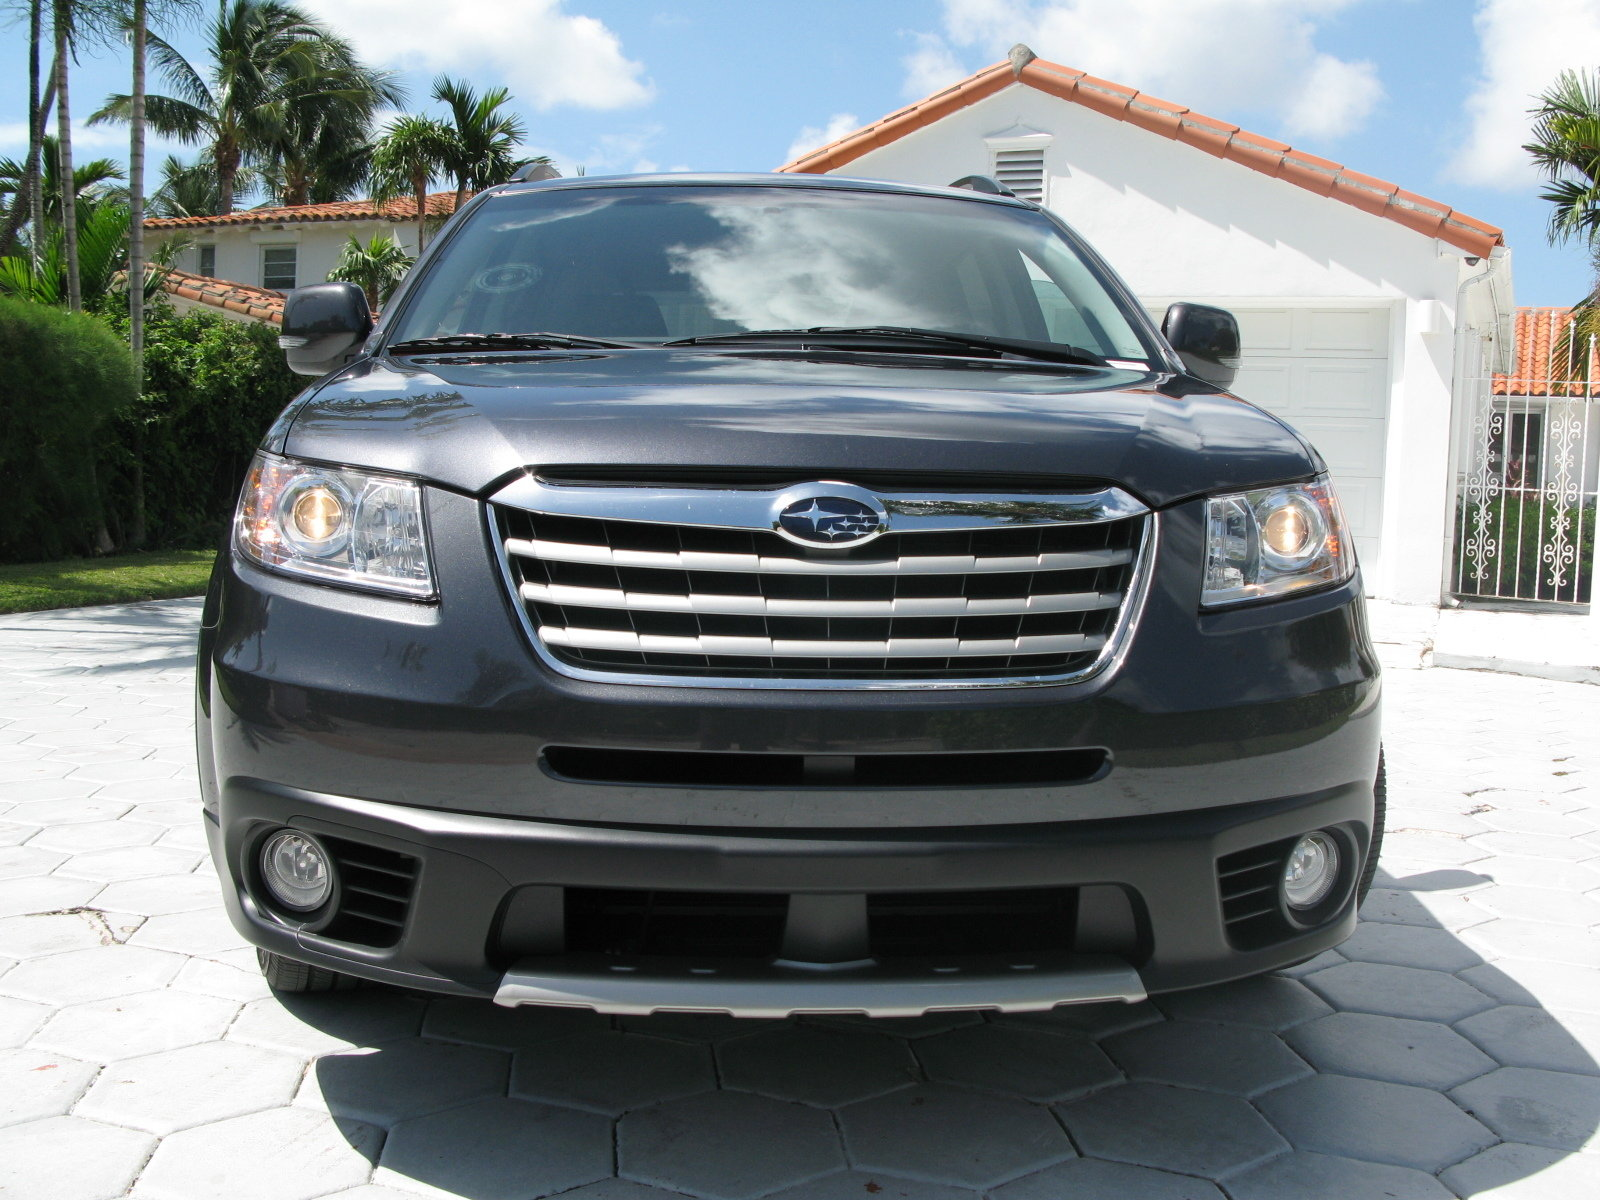 2008 subaru tribeca limited picture 262934 car review. Black Bedroom Furniture Sets. Home Design Ideas